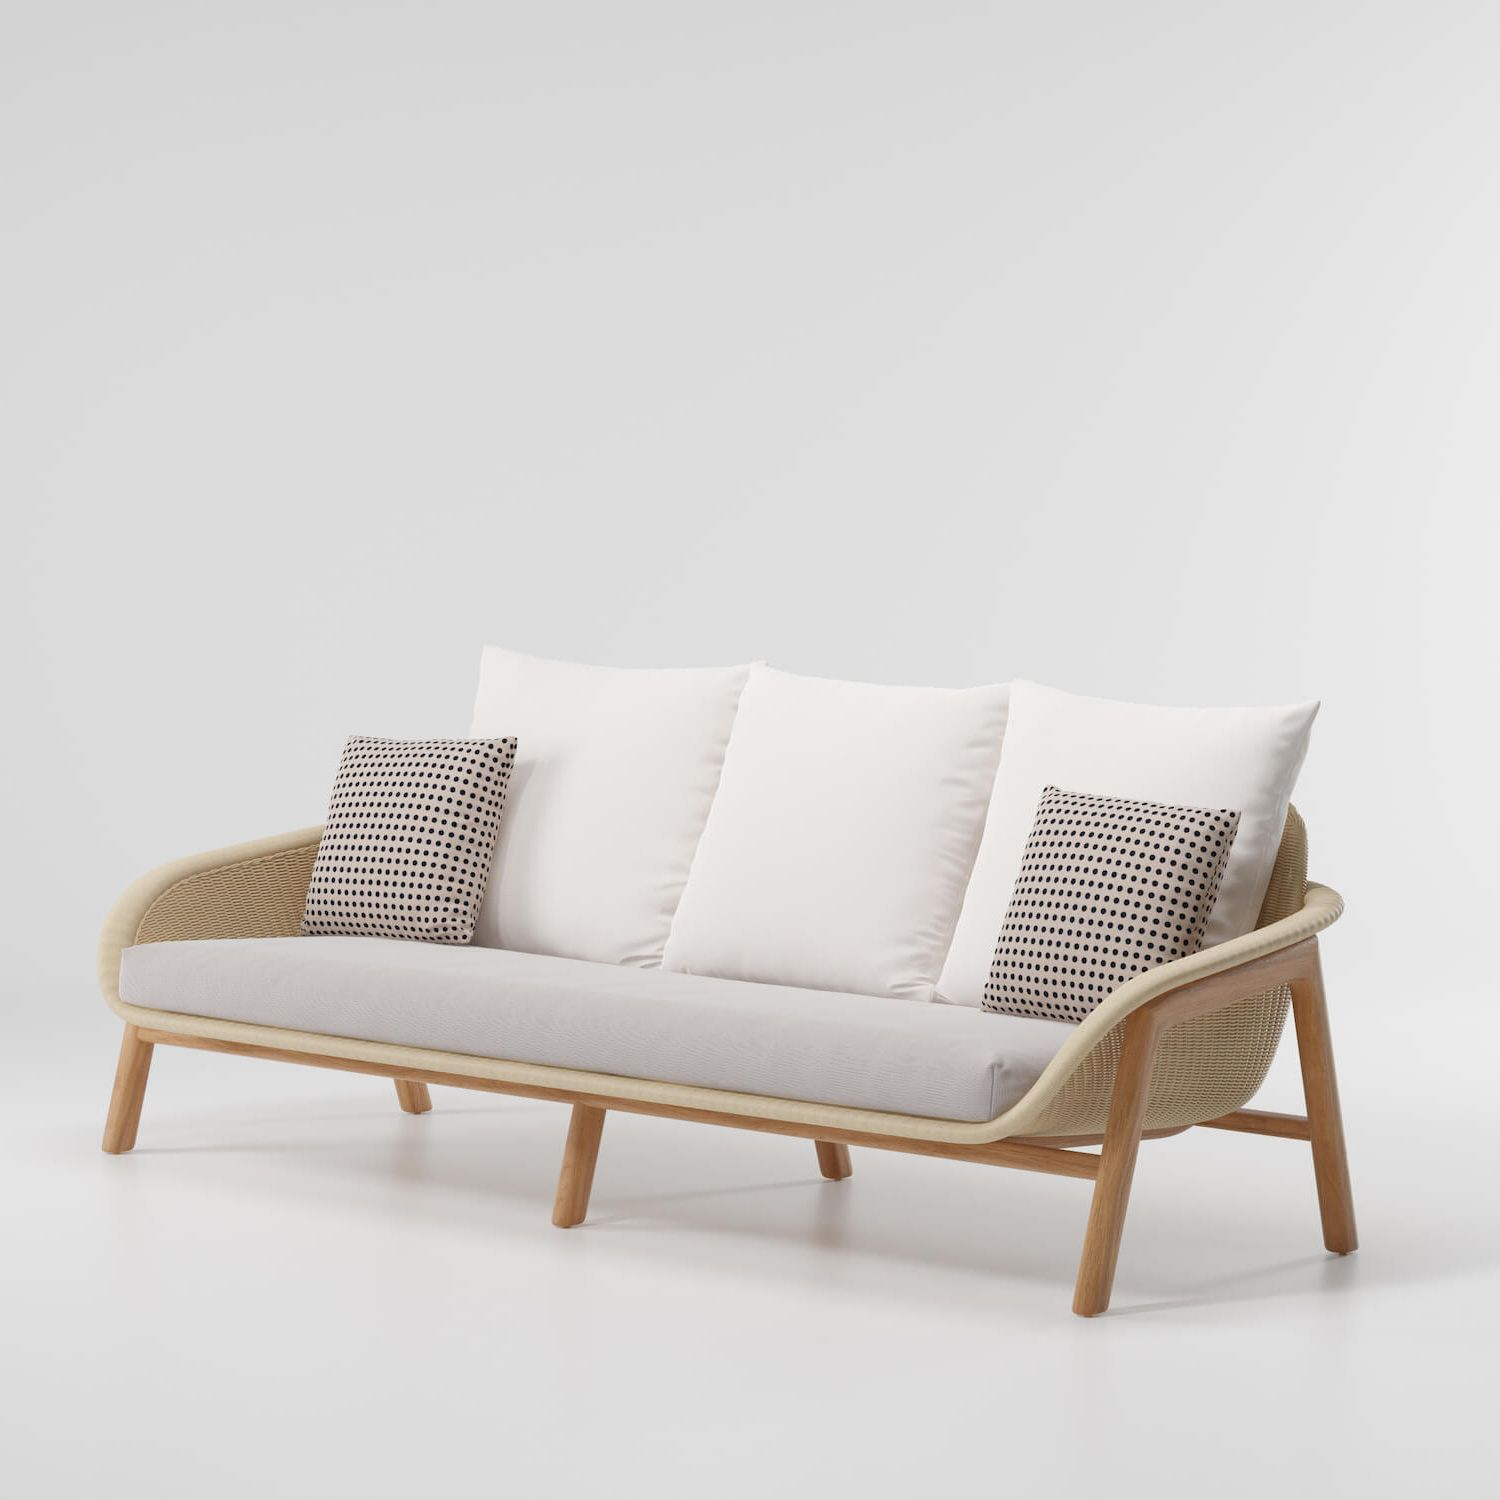 Vimini 3 Seater Sofa